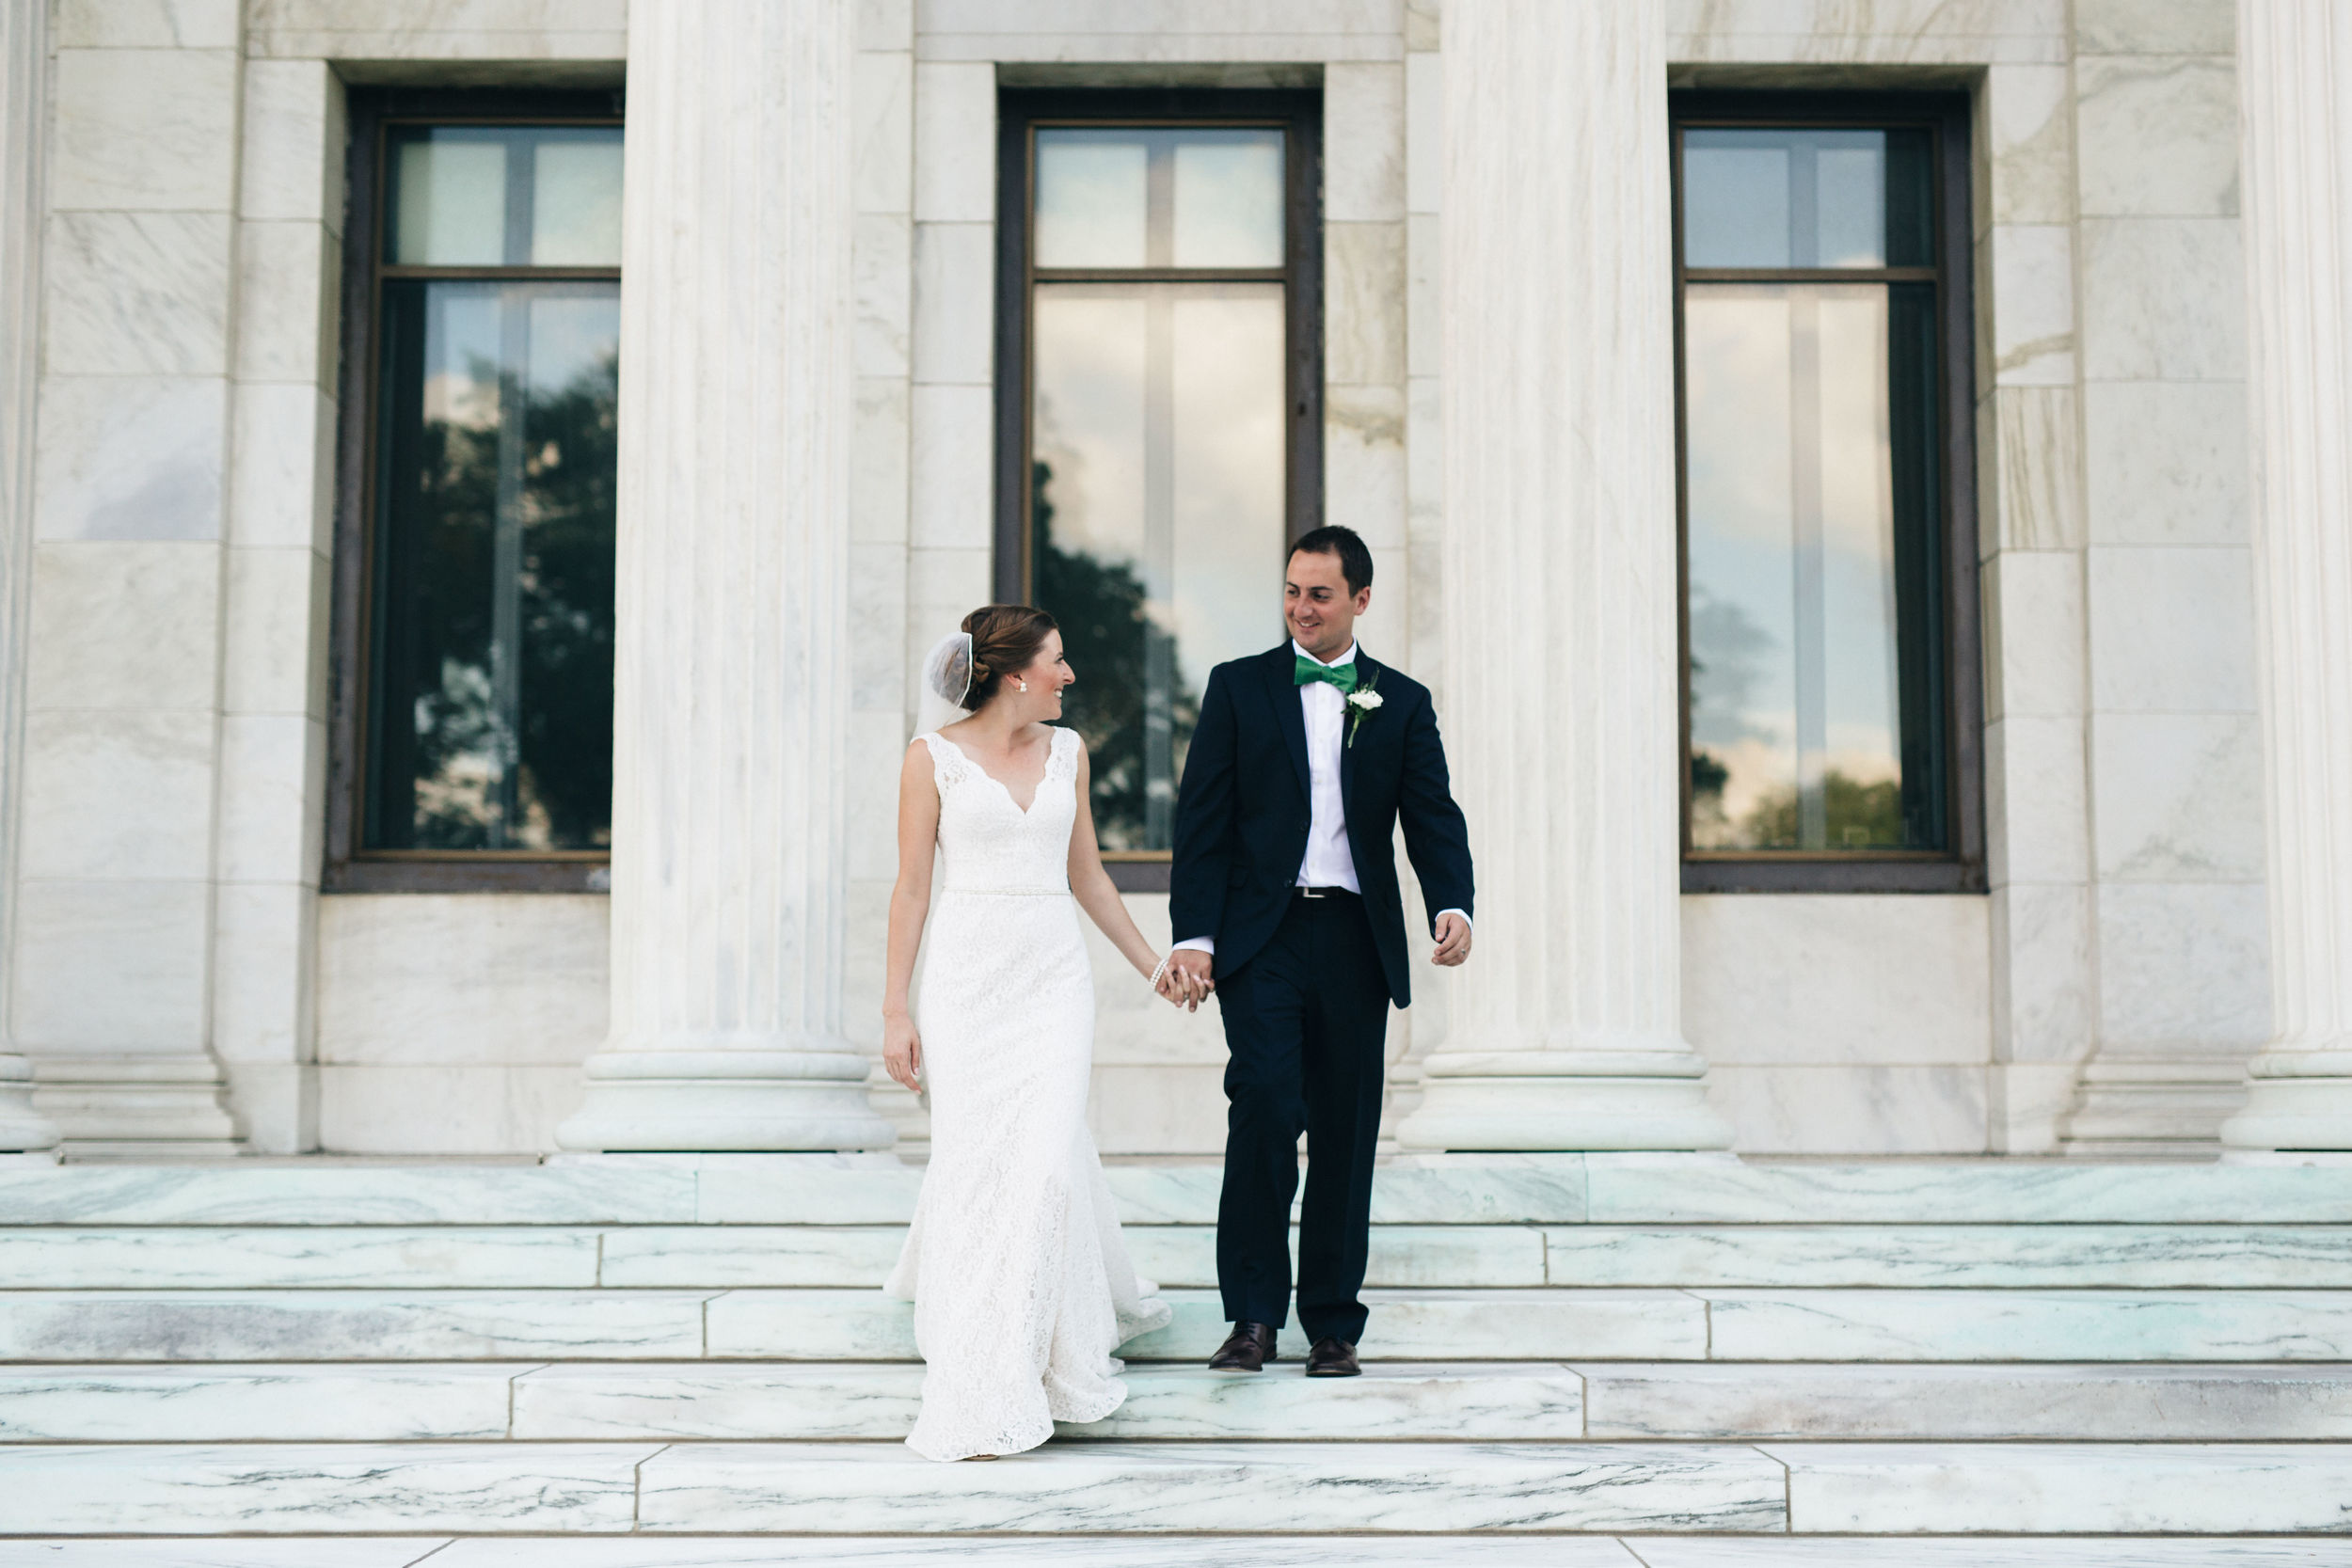 At the Toledo Museum of Art for bride and groom wedding photography.